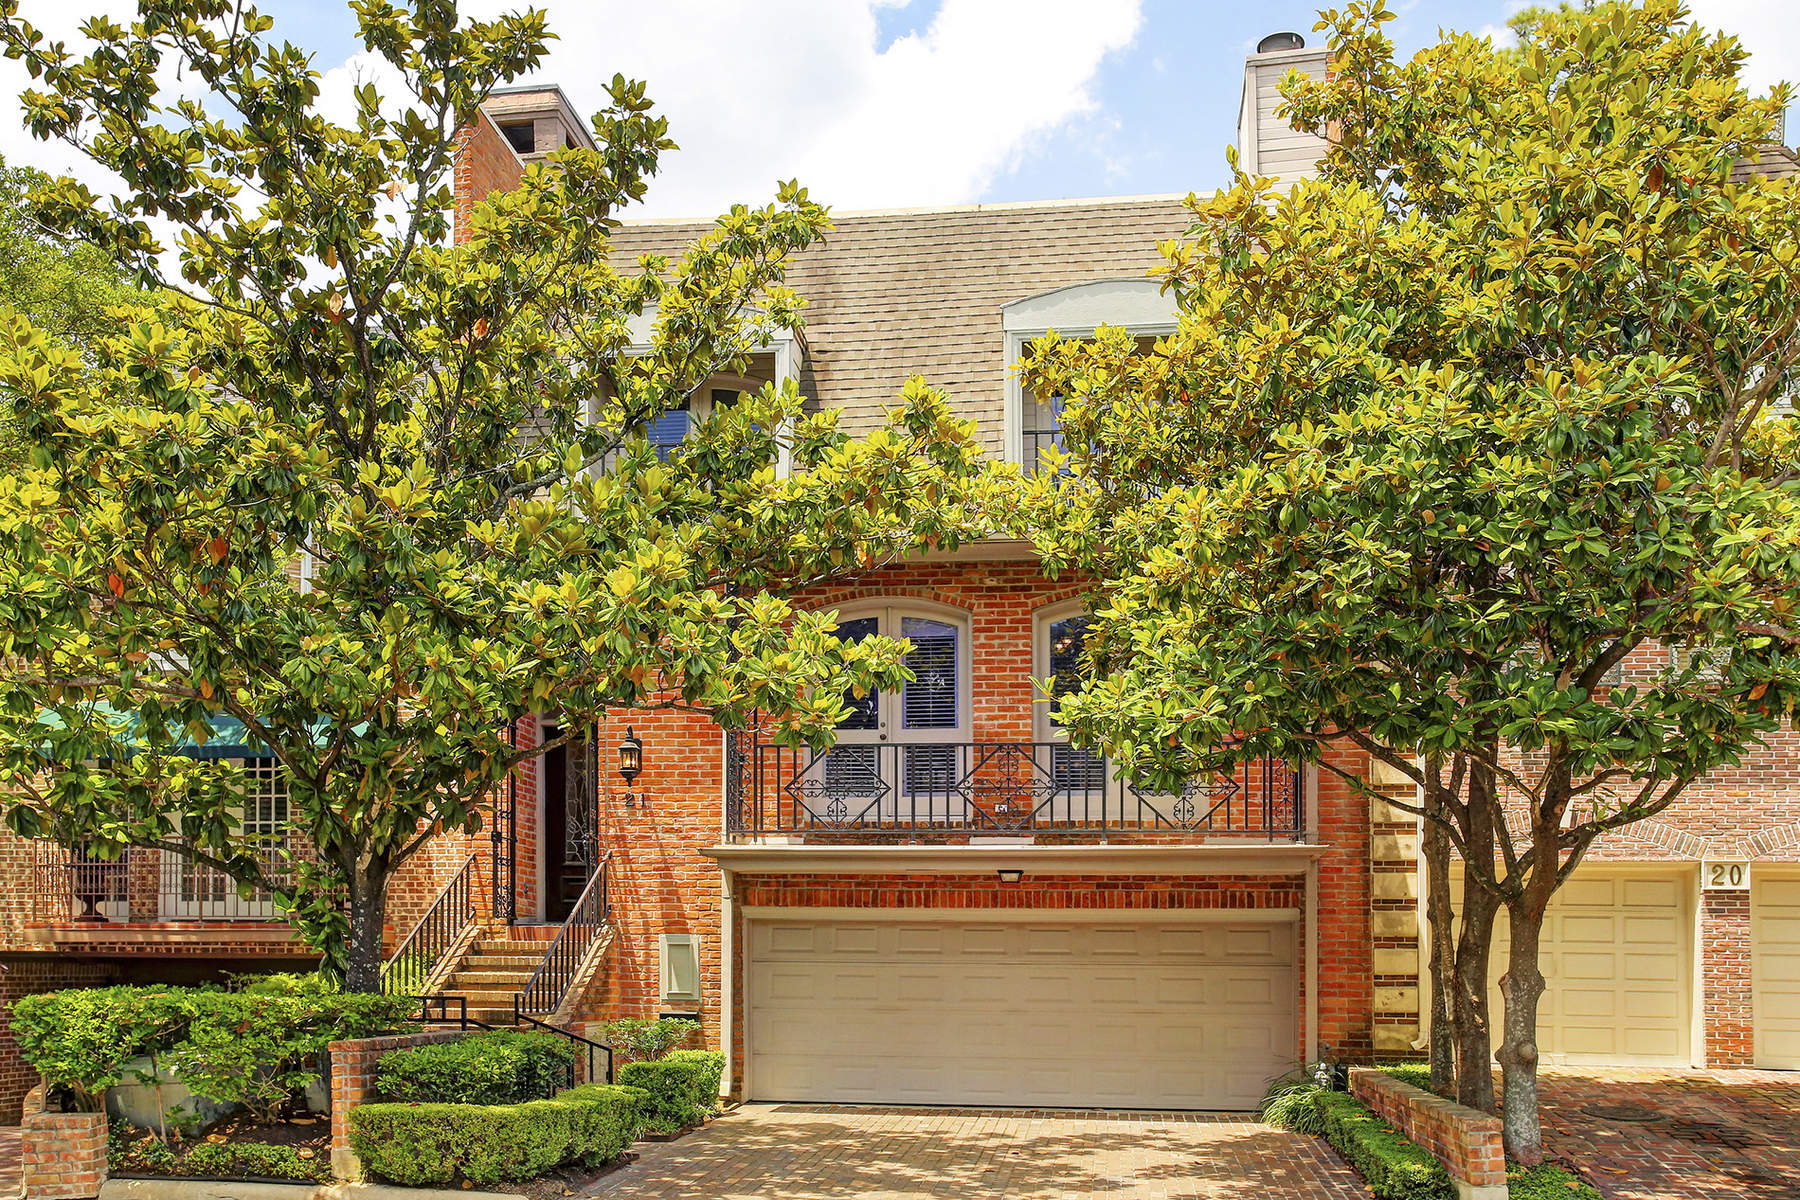 Townhouse for Sale at 21 Pine Briar Circle Tanglewood, Houston, Texas, 77056 United States